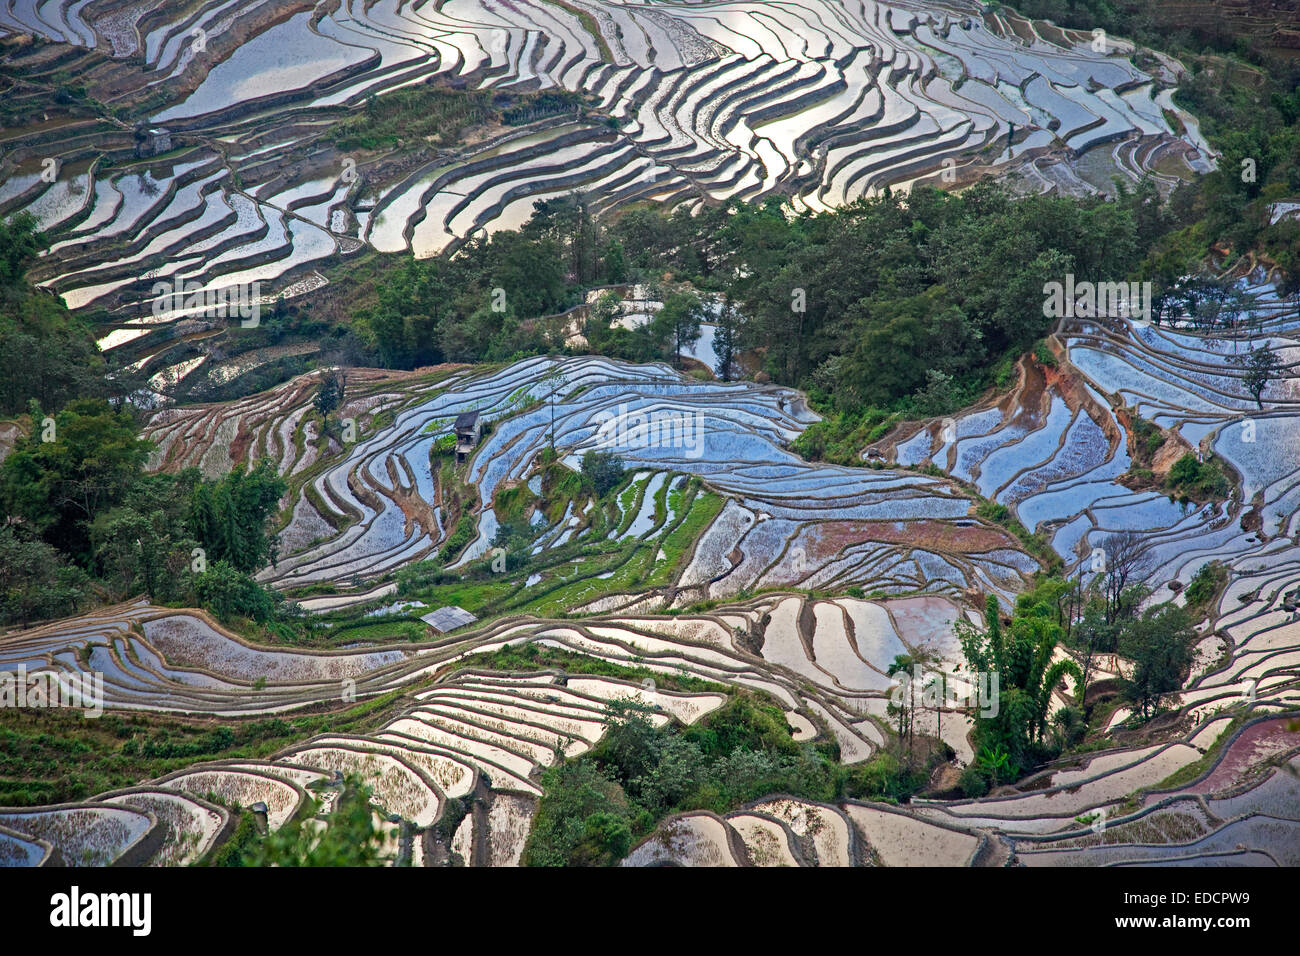 Terraced rice paddies on hillside near Xinjie in the Yuangyang district, Yunnan province, China - Stock Image